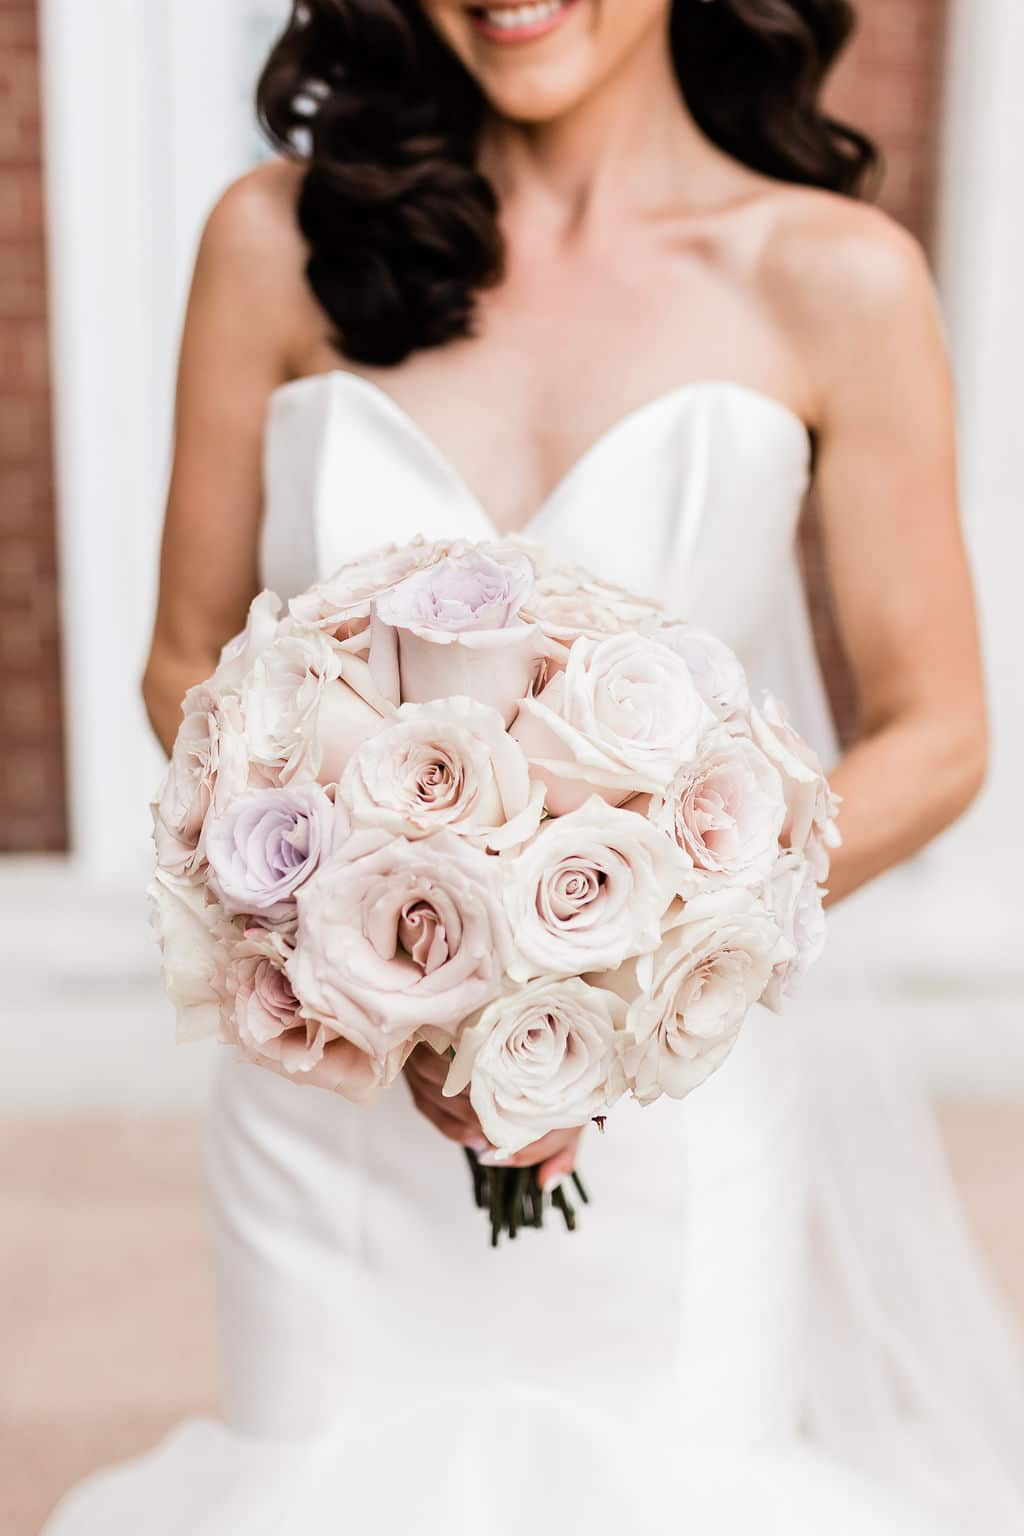 bride smilinng holding beautiful blush pink bouquet of flowers